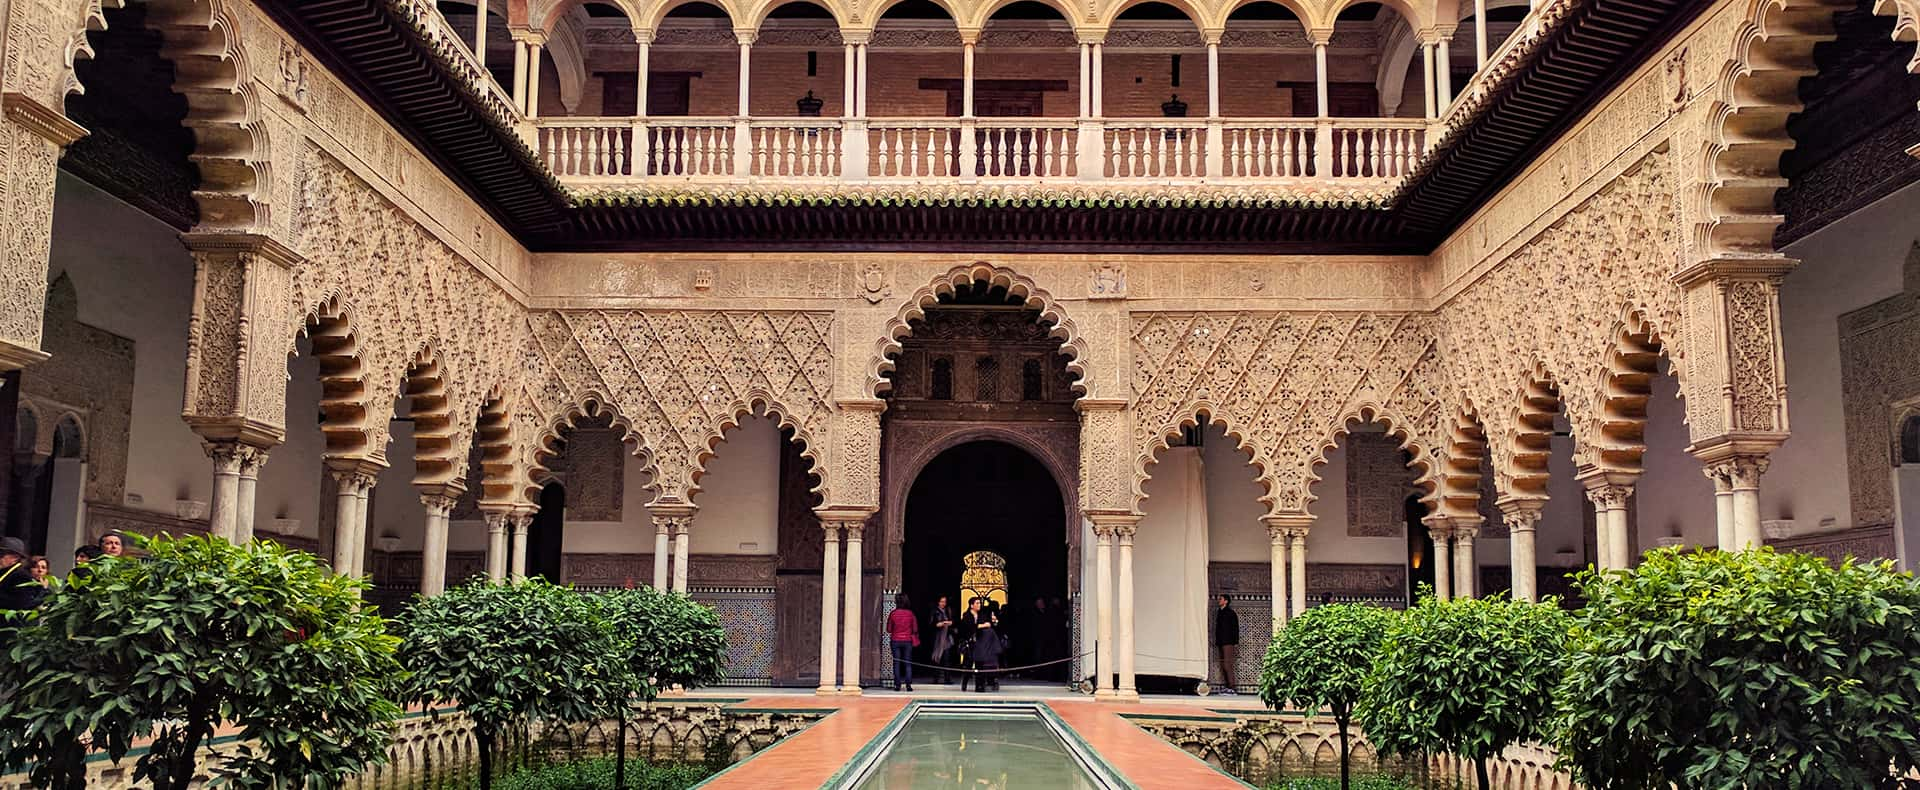 Real Alcazar of Seville, Seville, Spain